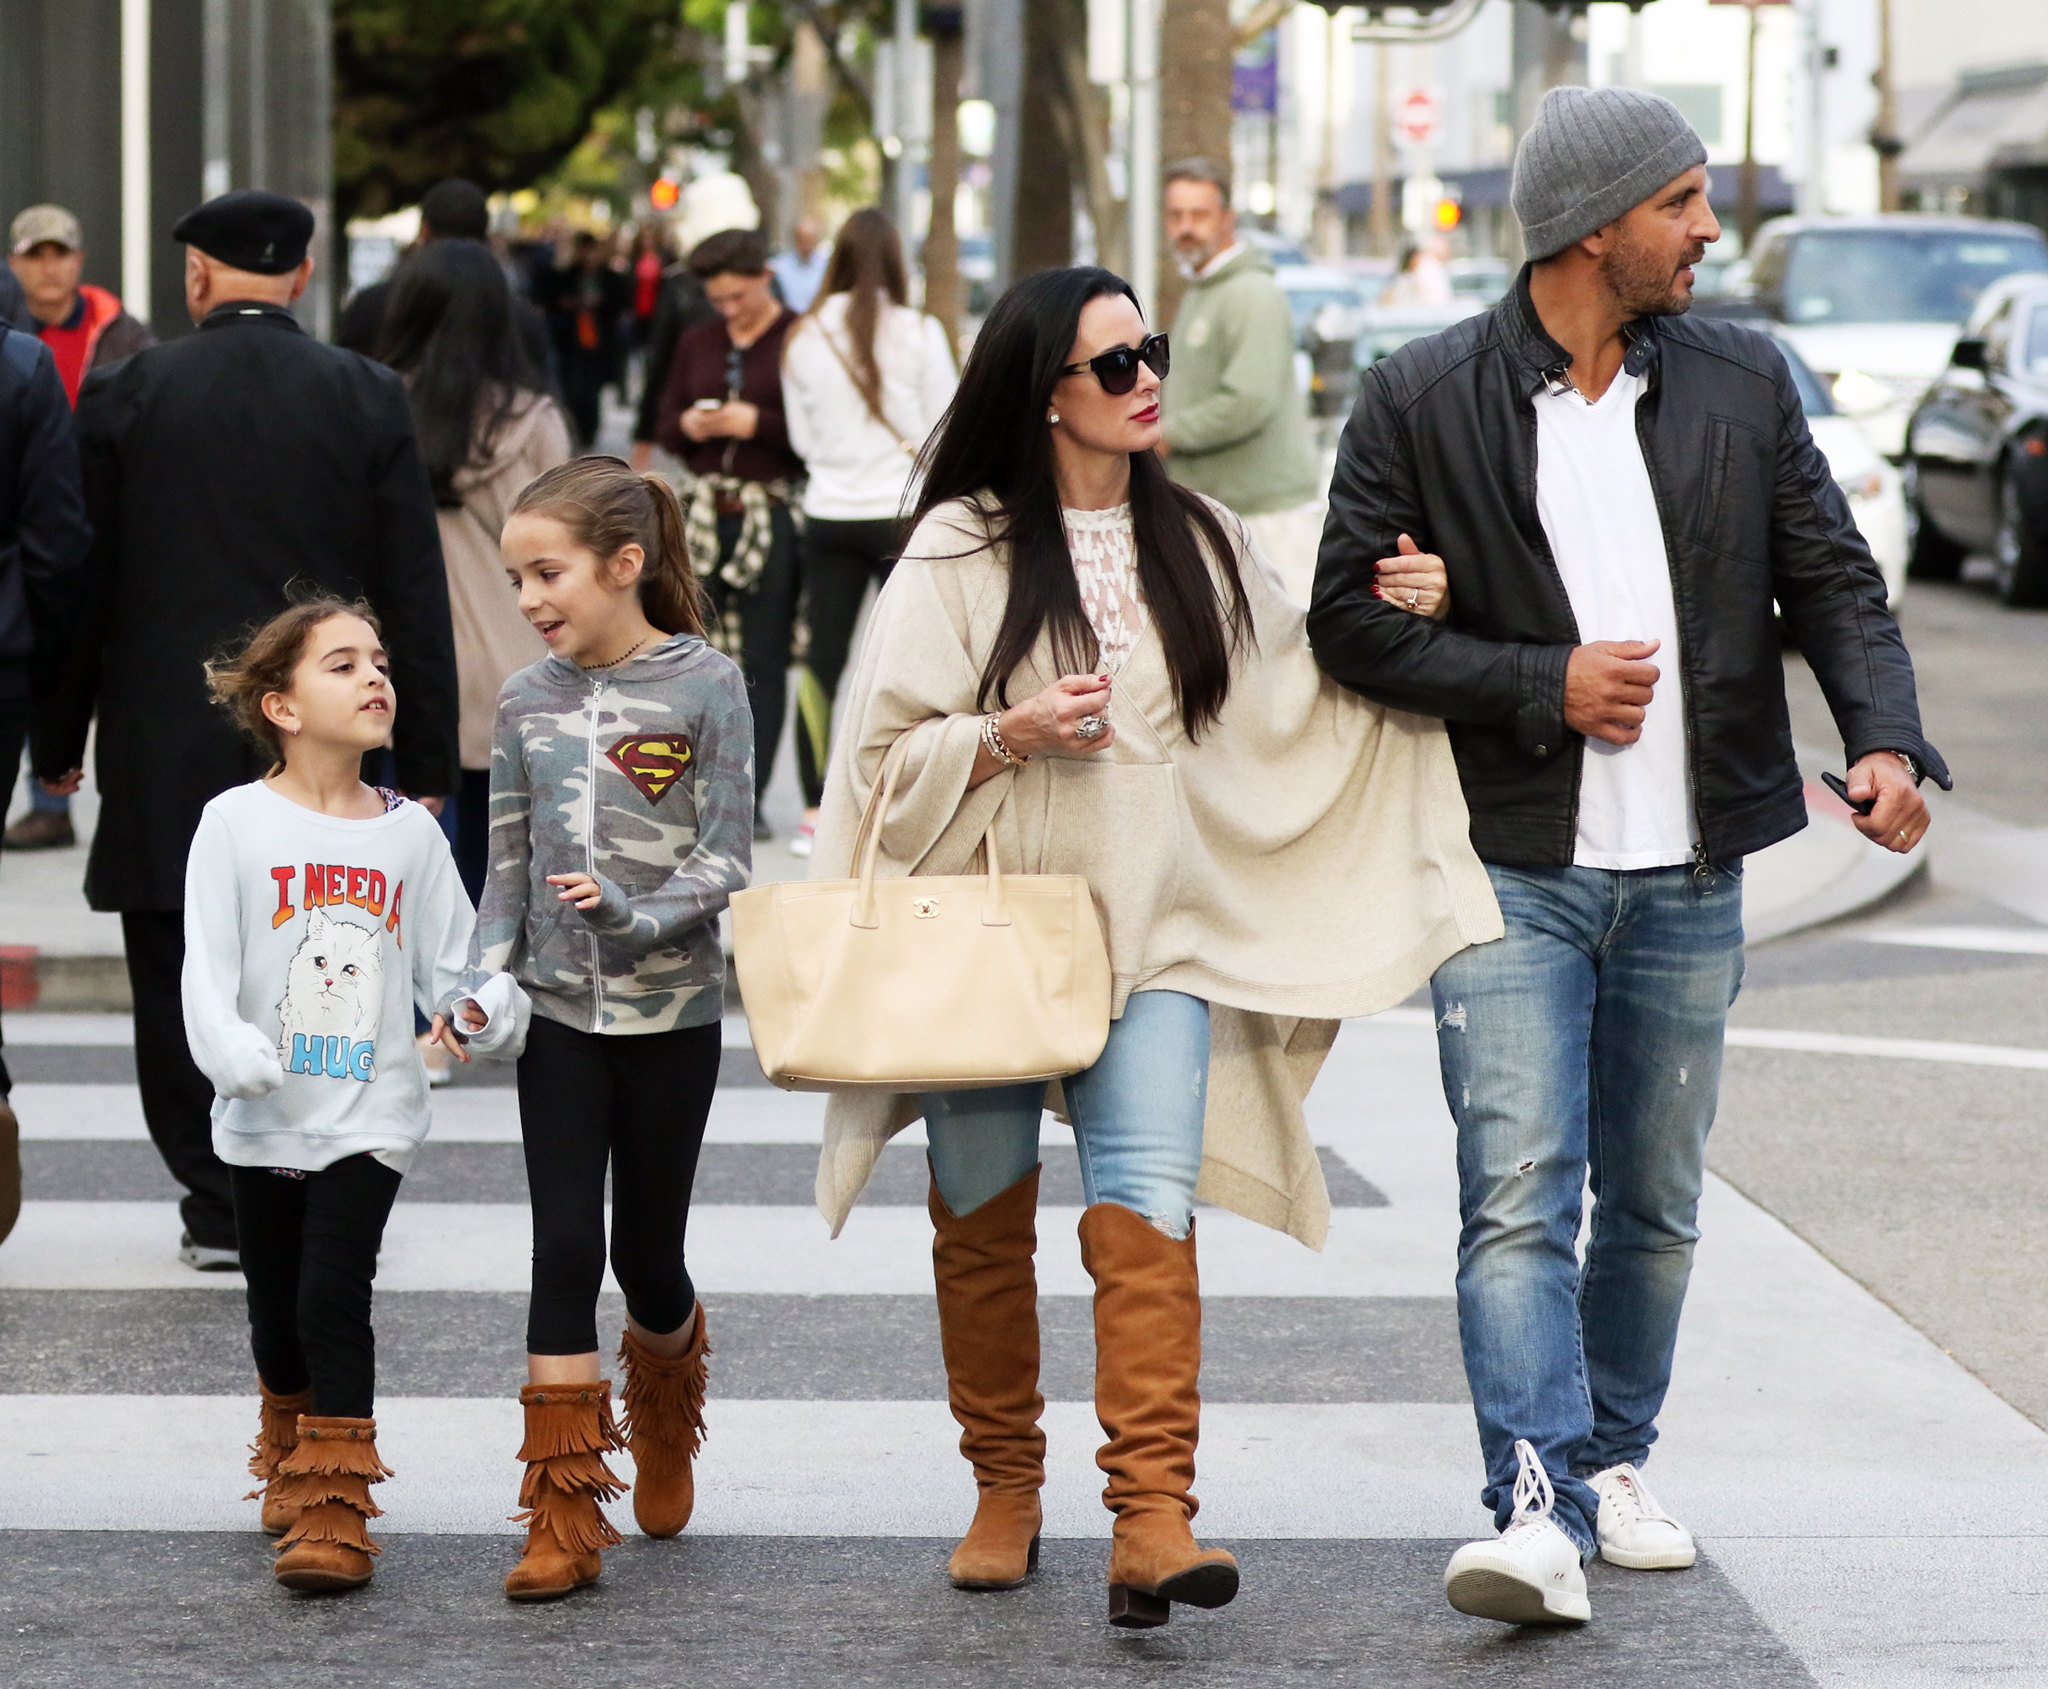 Kyle Richards And Family Out In Beverly Hills 122115 Lipstick Alley